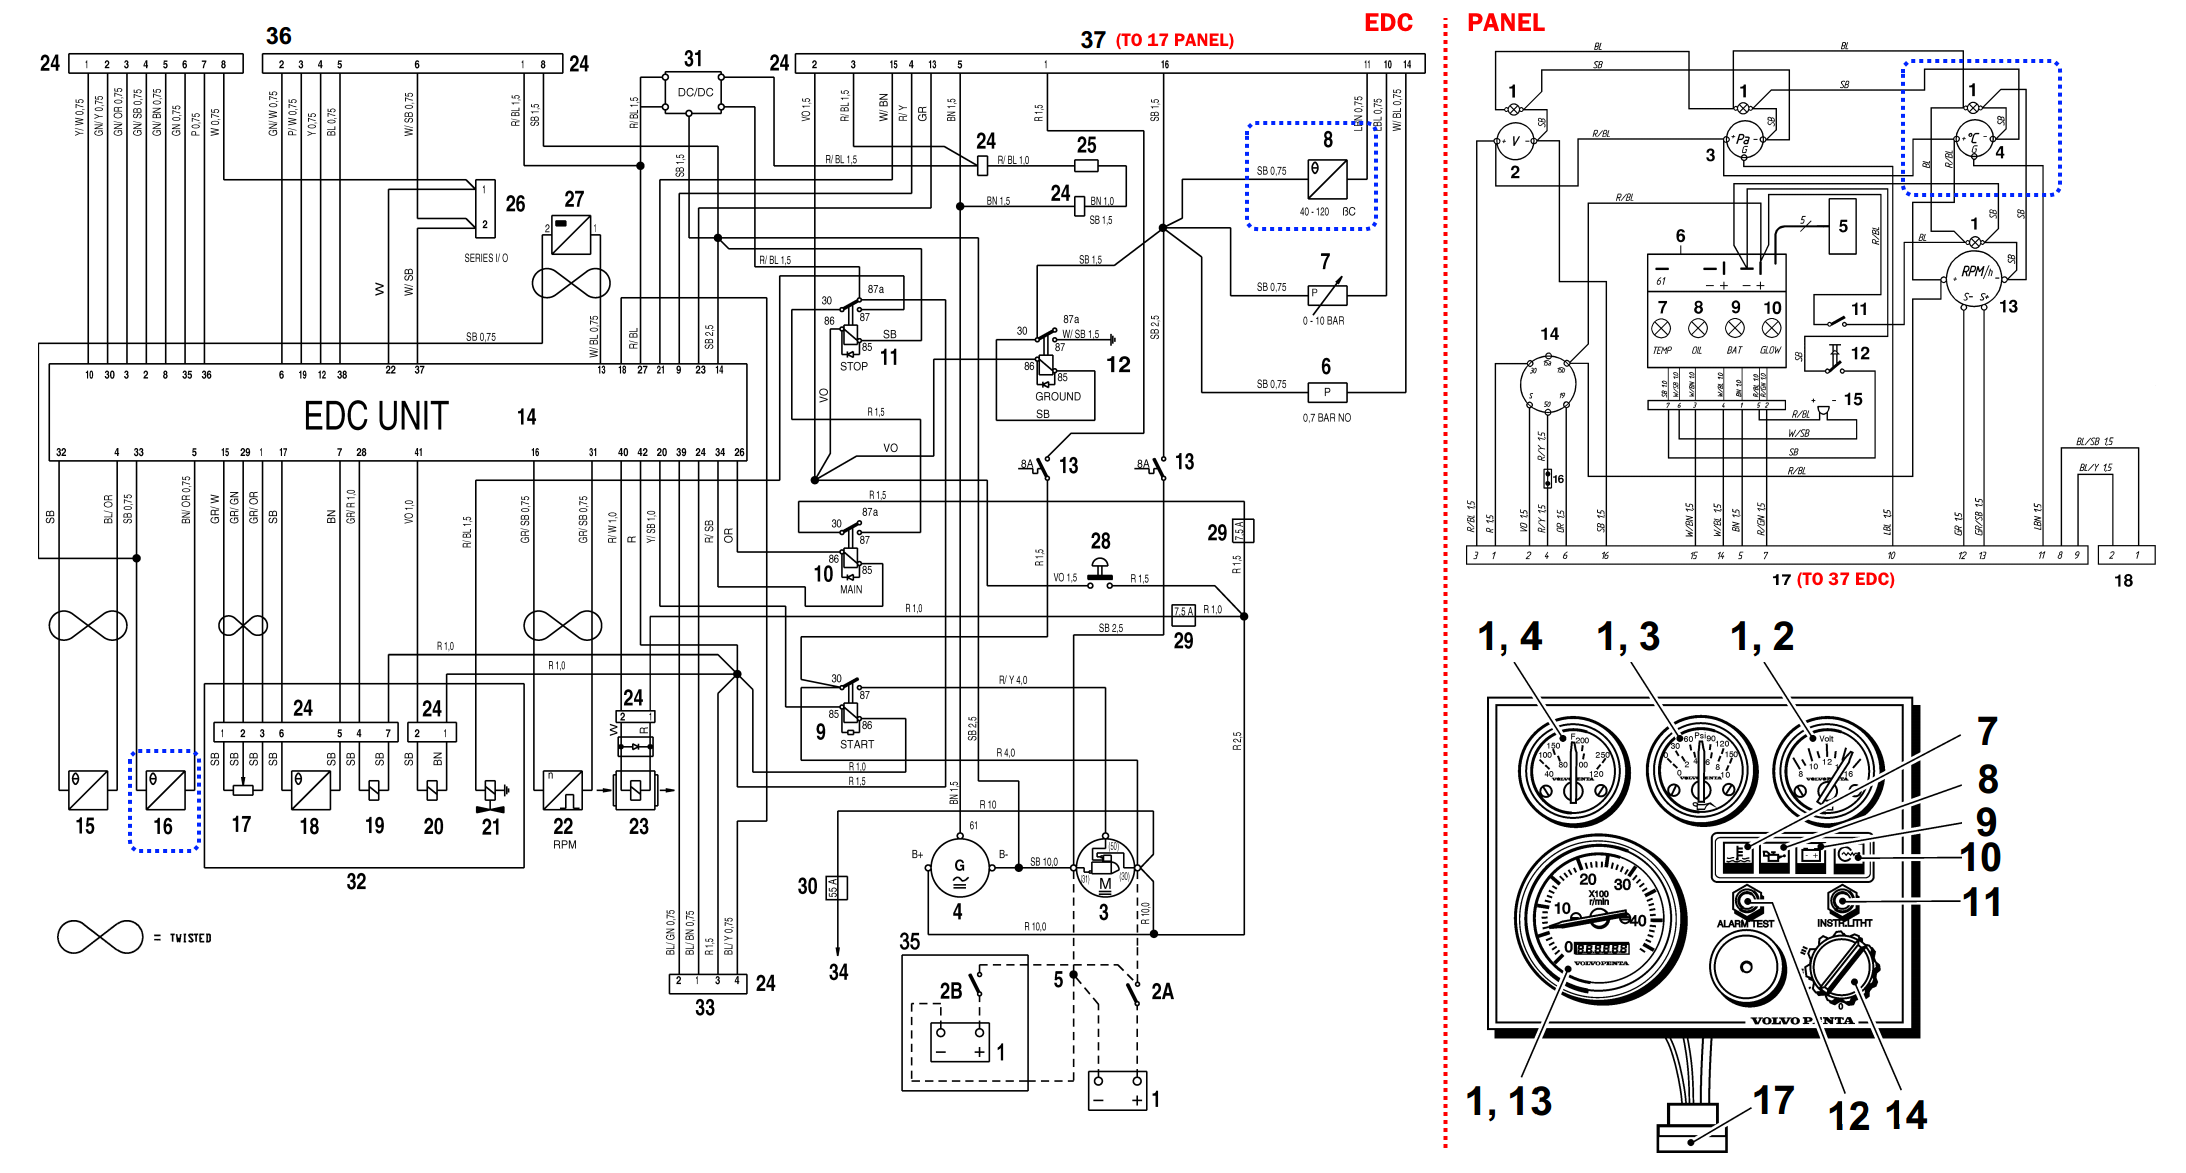 j1939 international 4700 wiring diagram 14 20 tierarztpraxis ruffy rh 14 20 tierarztpraxis ruffy de International